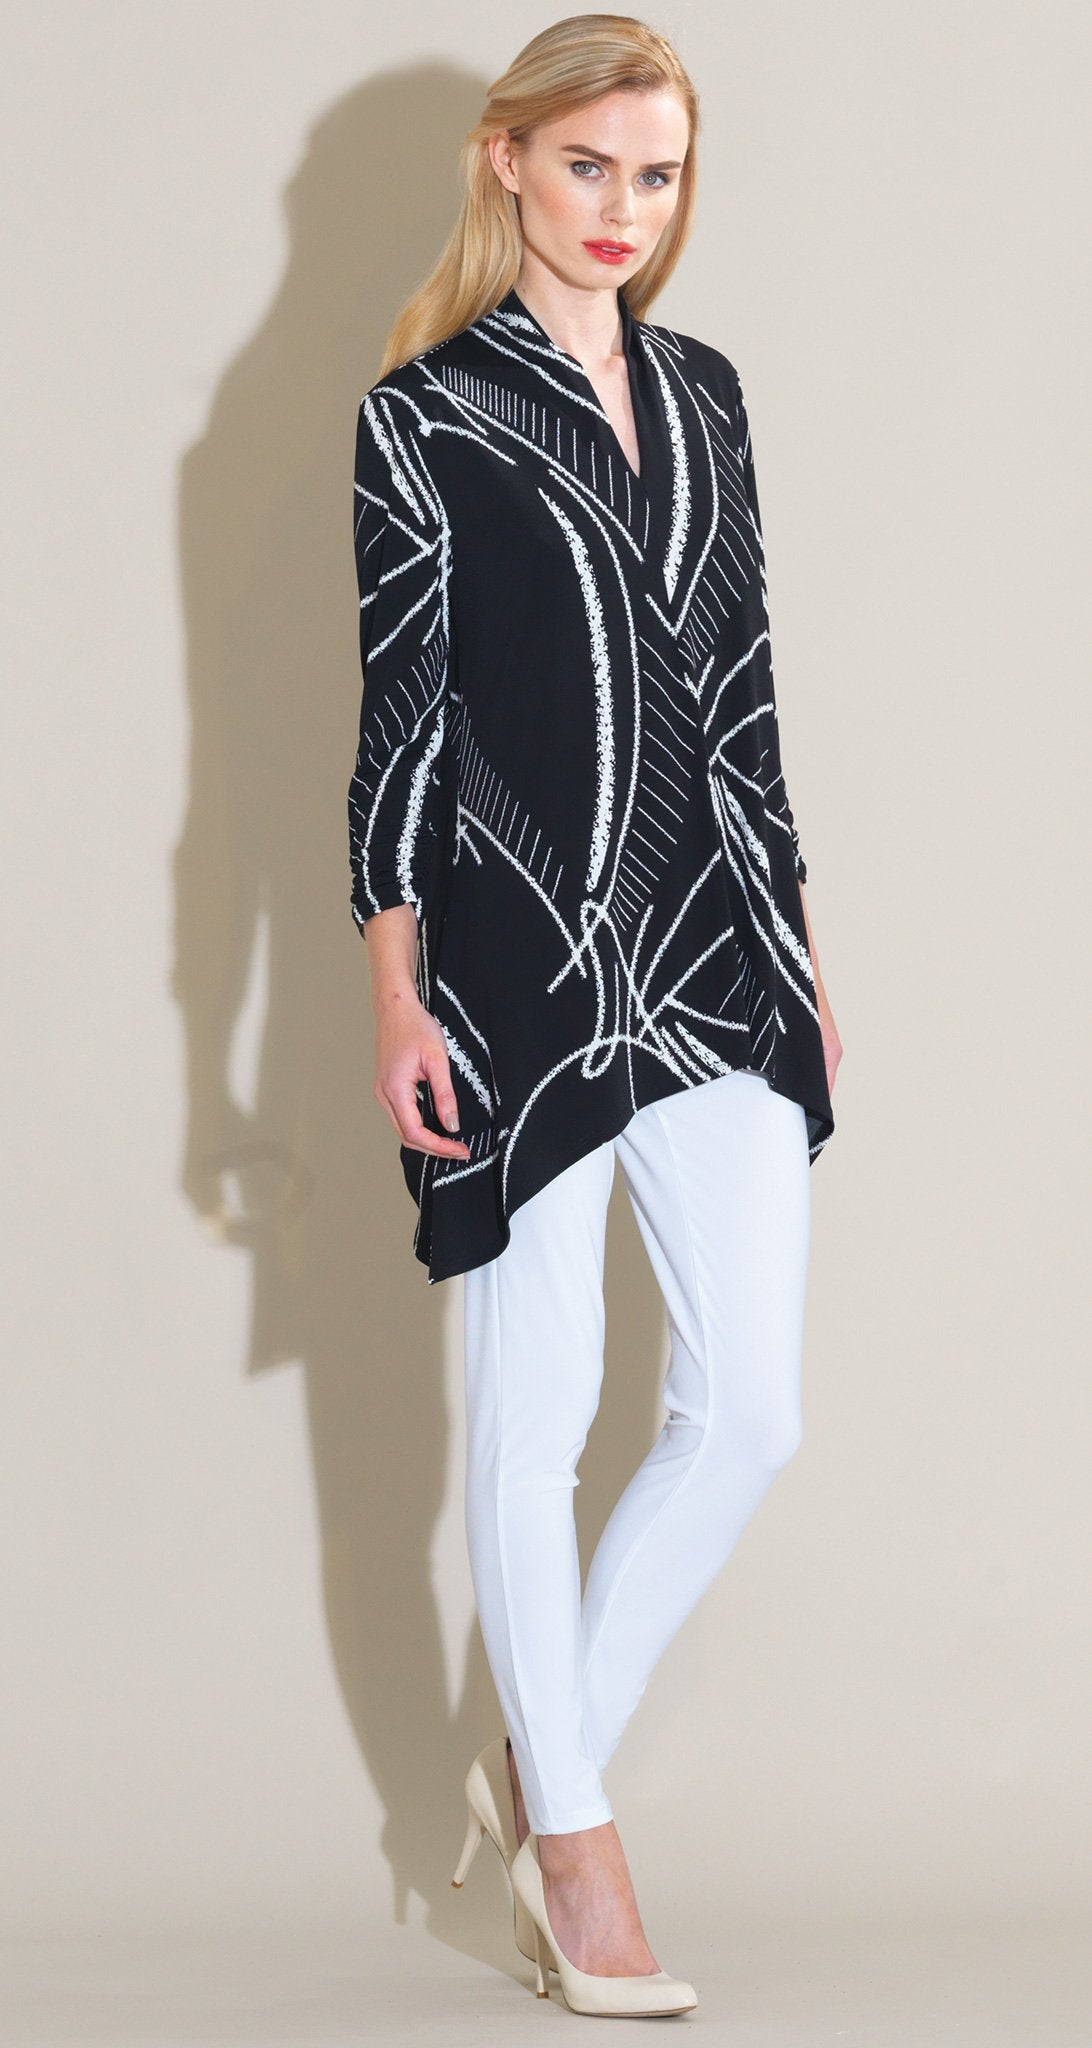 Fish Bone Sketch Print Narrow V-Neck Tunic - Black/White - Clara Sunwoo